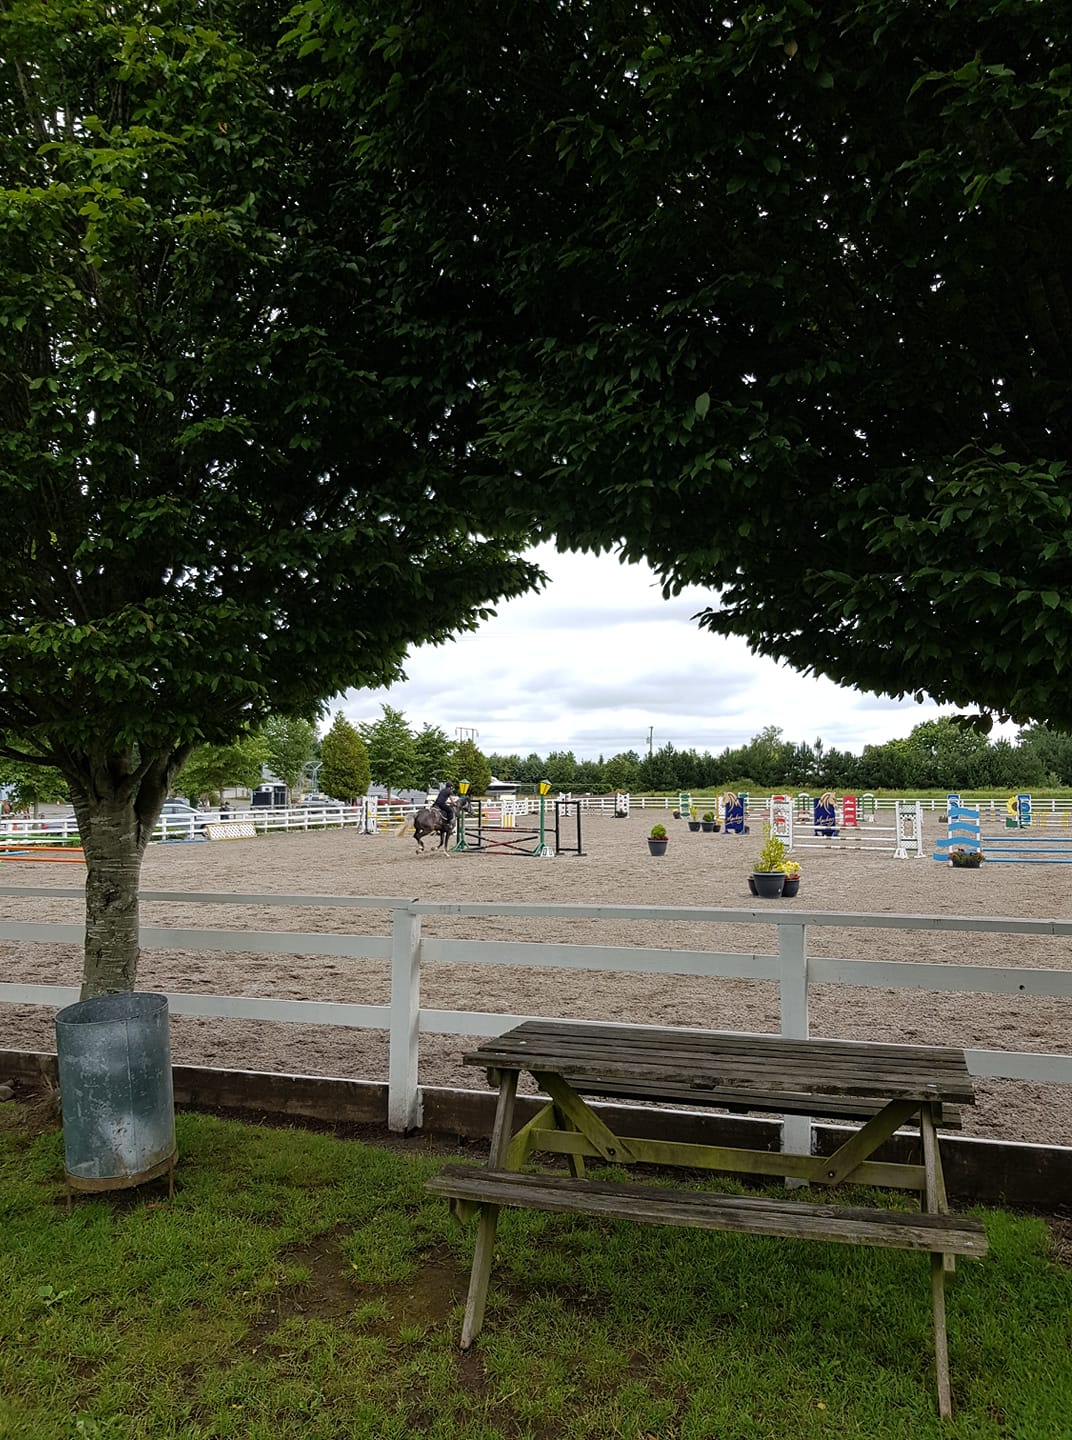 Coilog Pony Classic Show and Coolmore Pony Premier